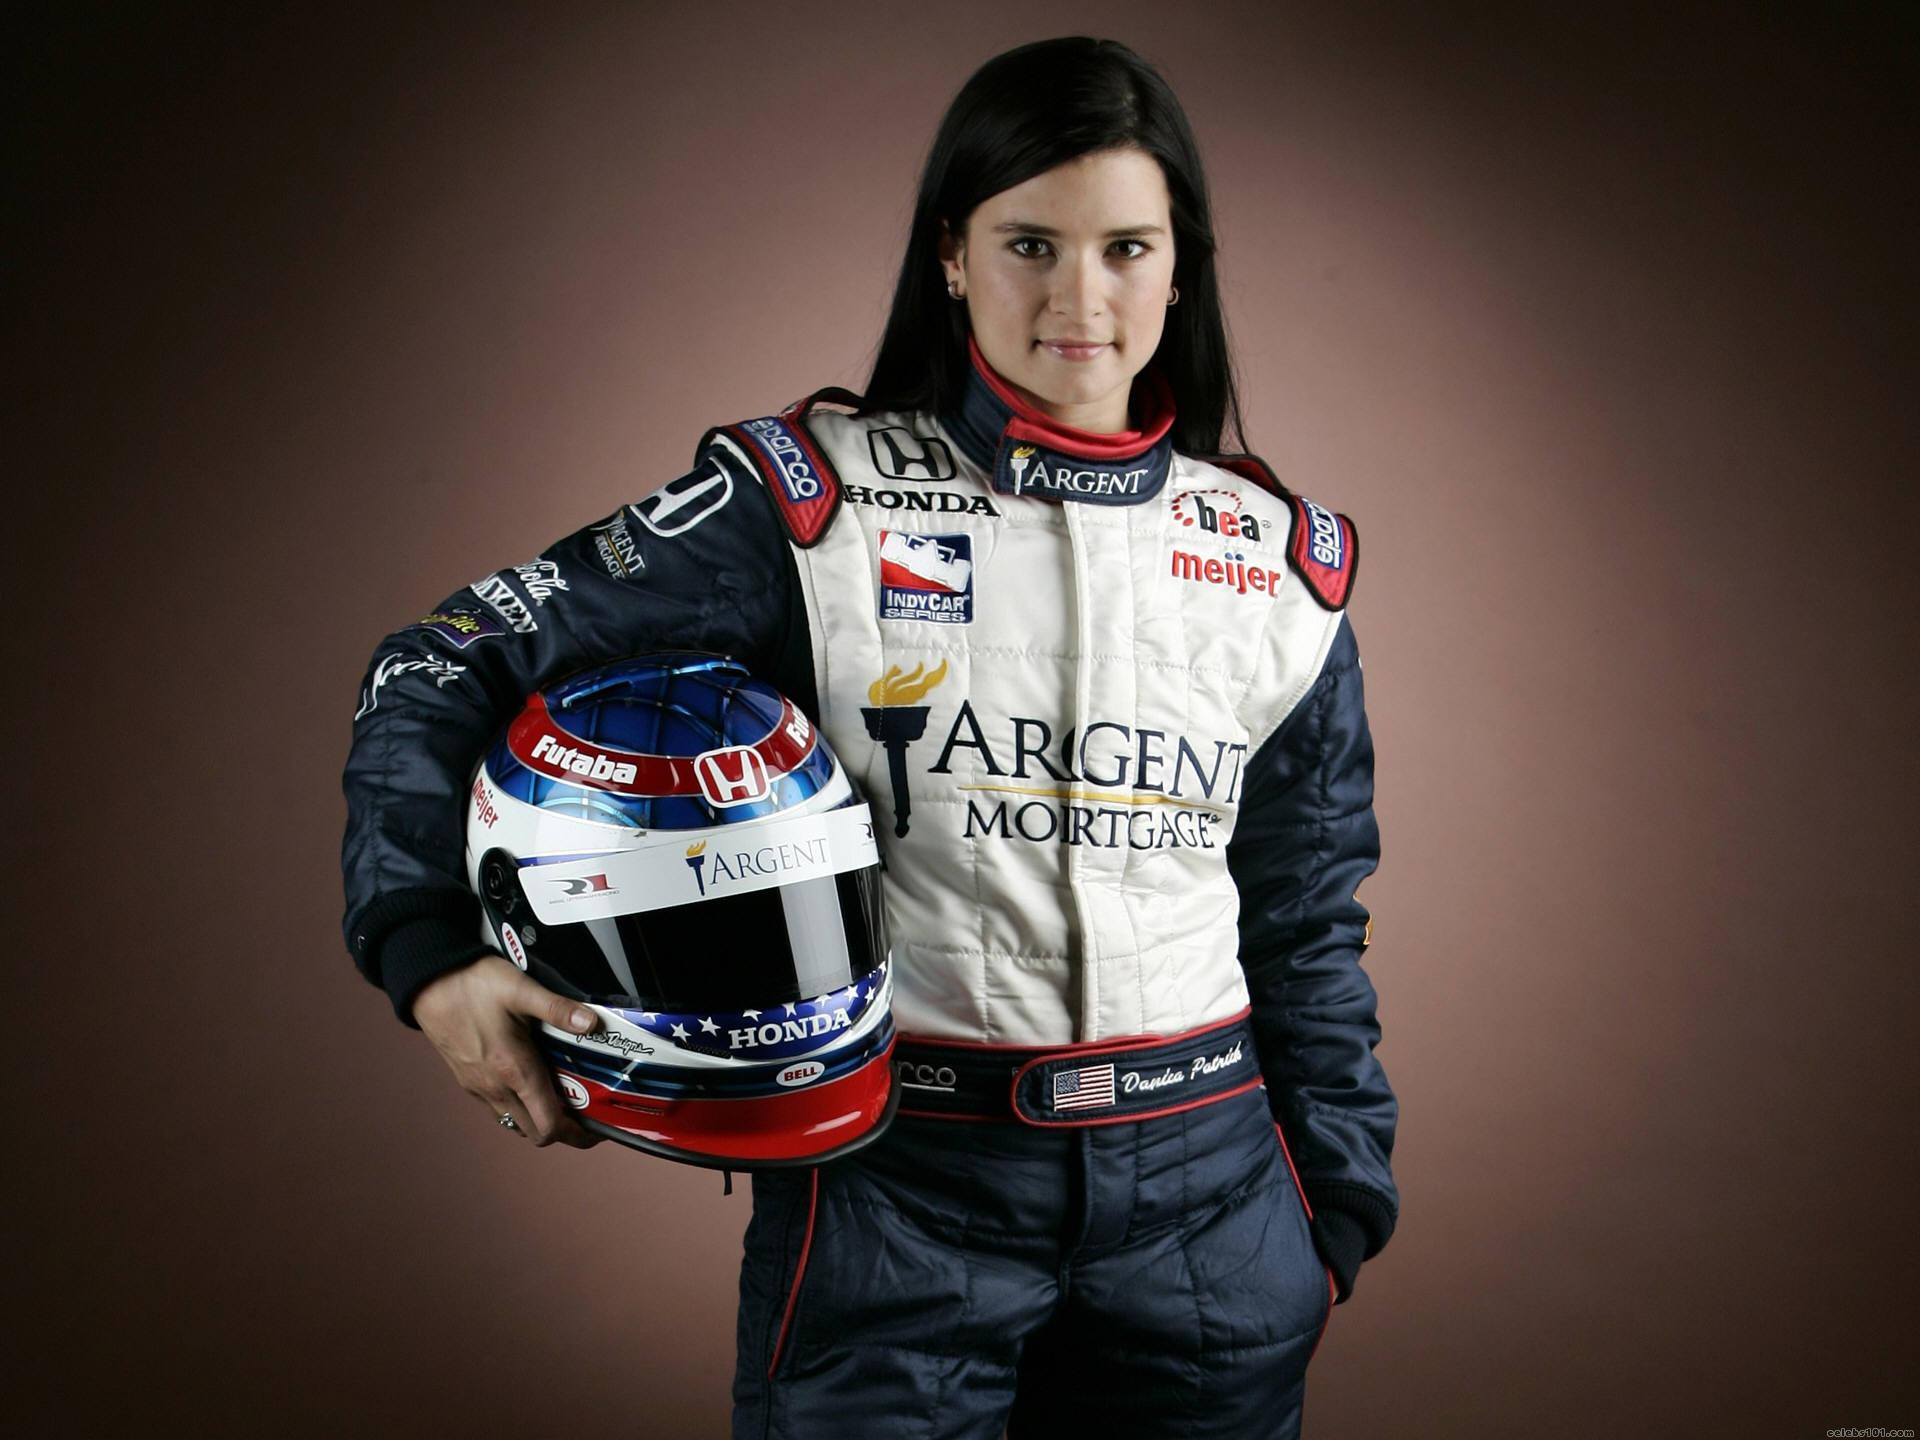 Danica Patrick High quality wallpaper size 1920x1440 of Danica Patrick 1920x1440